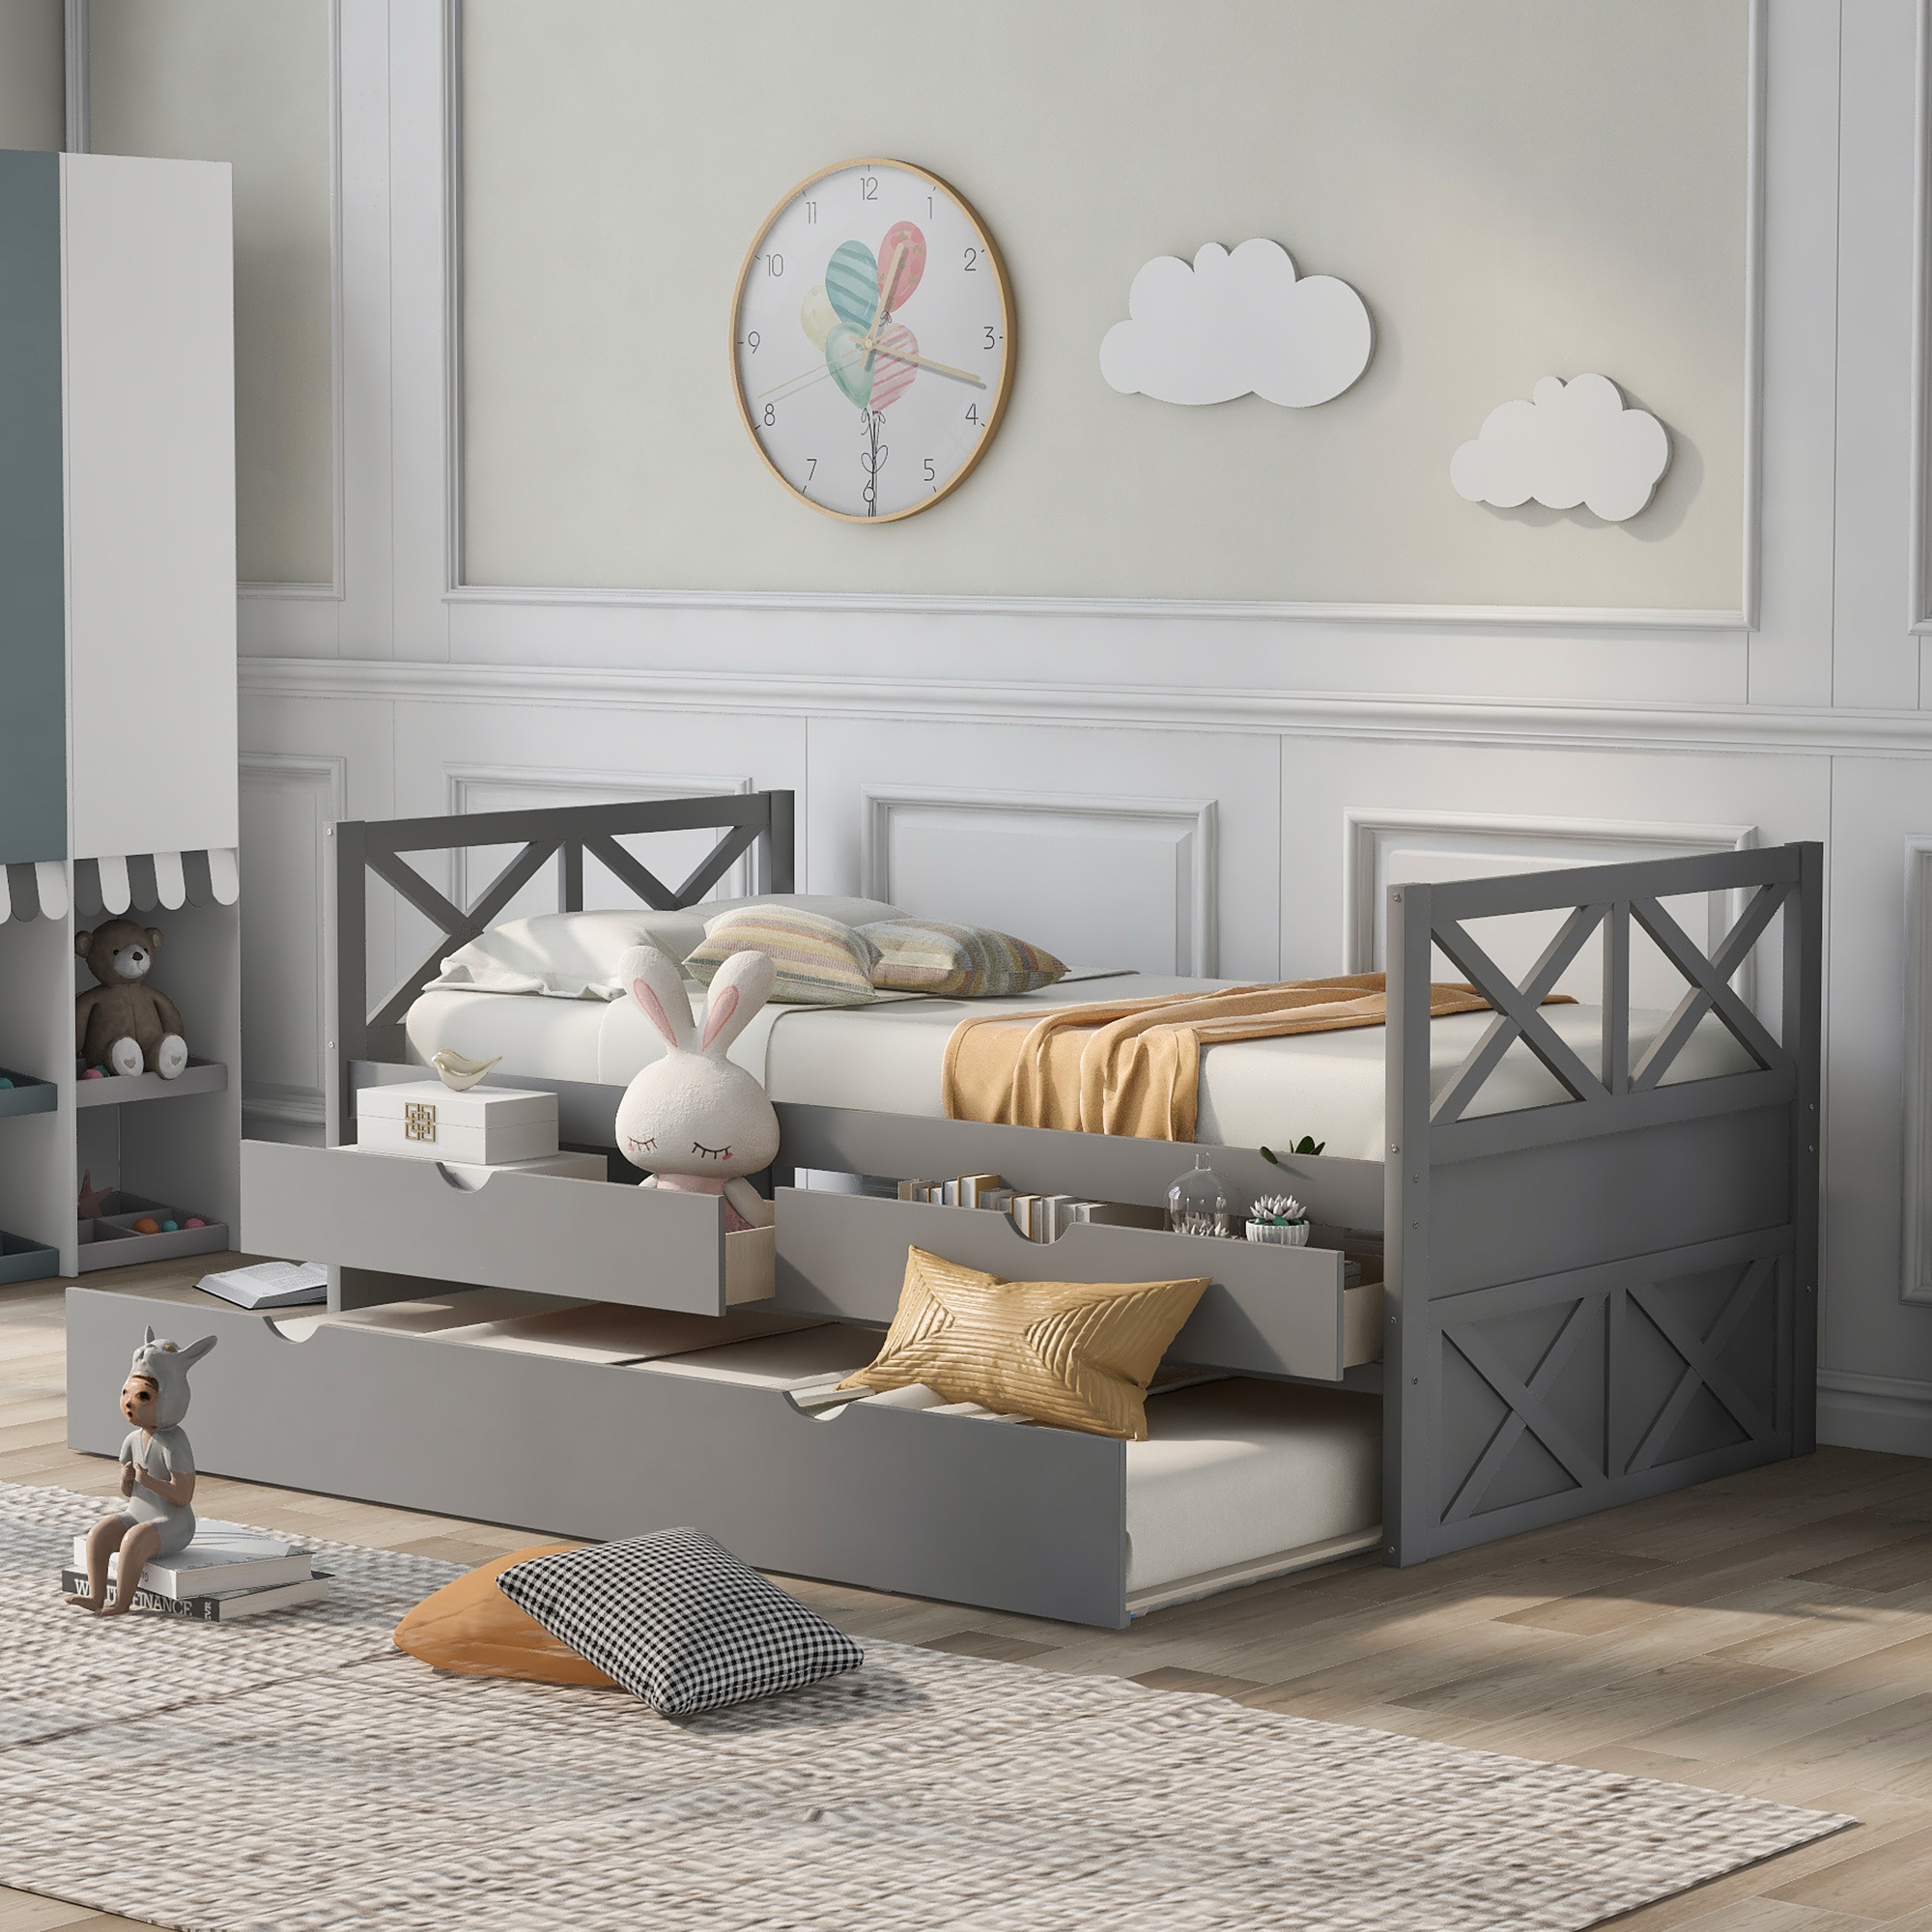 [US Direct] Multi-Functional Daybed with Drawers and Trundle, Espresso